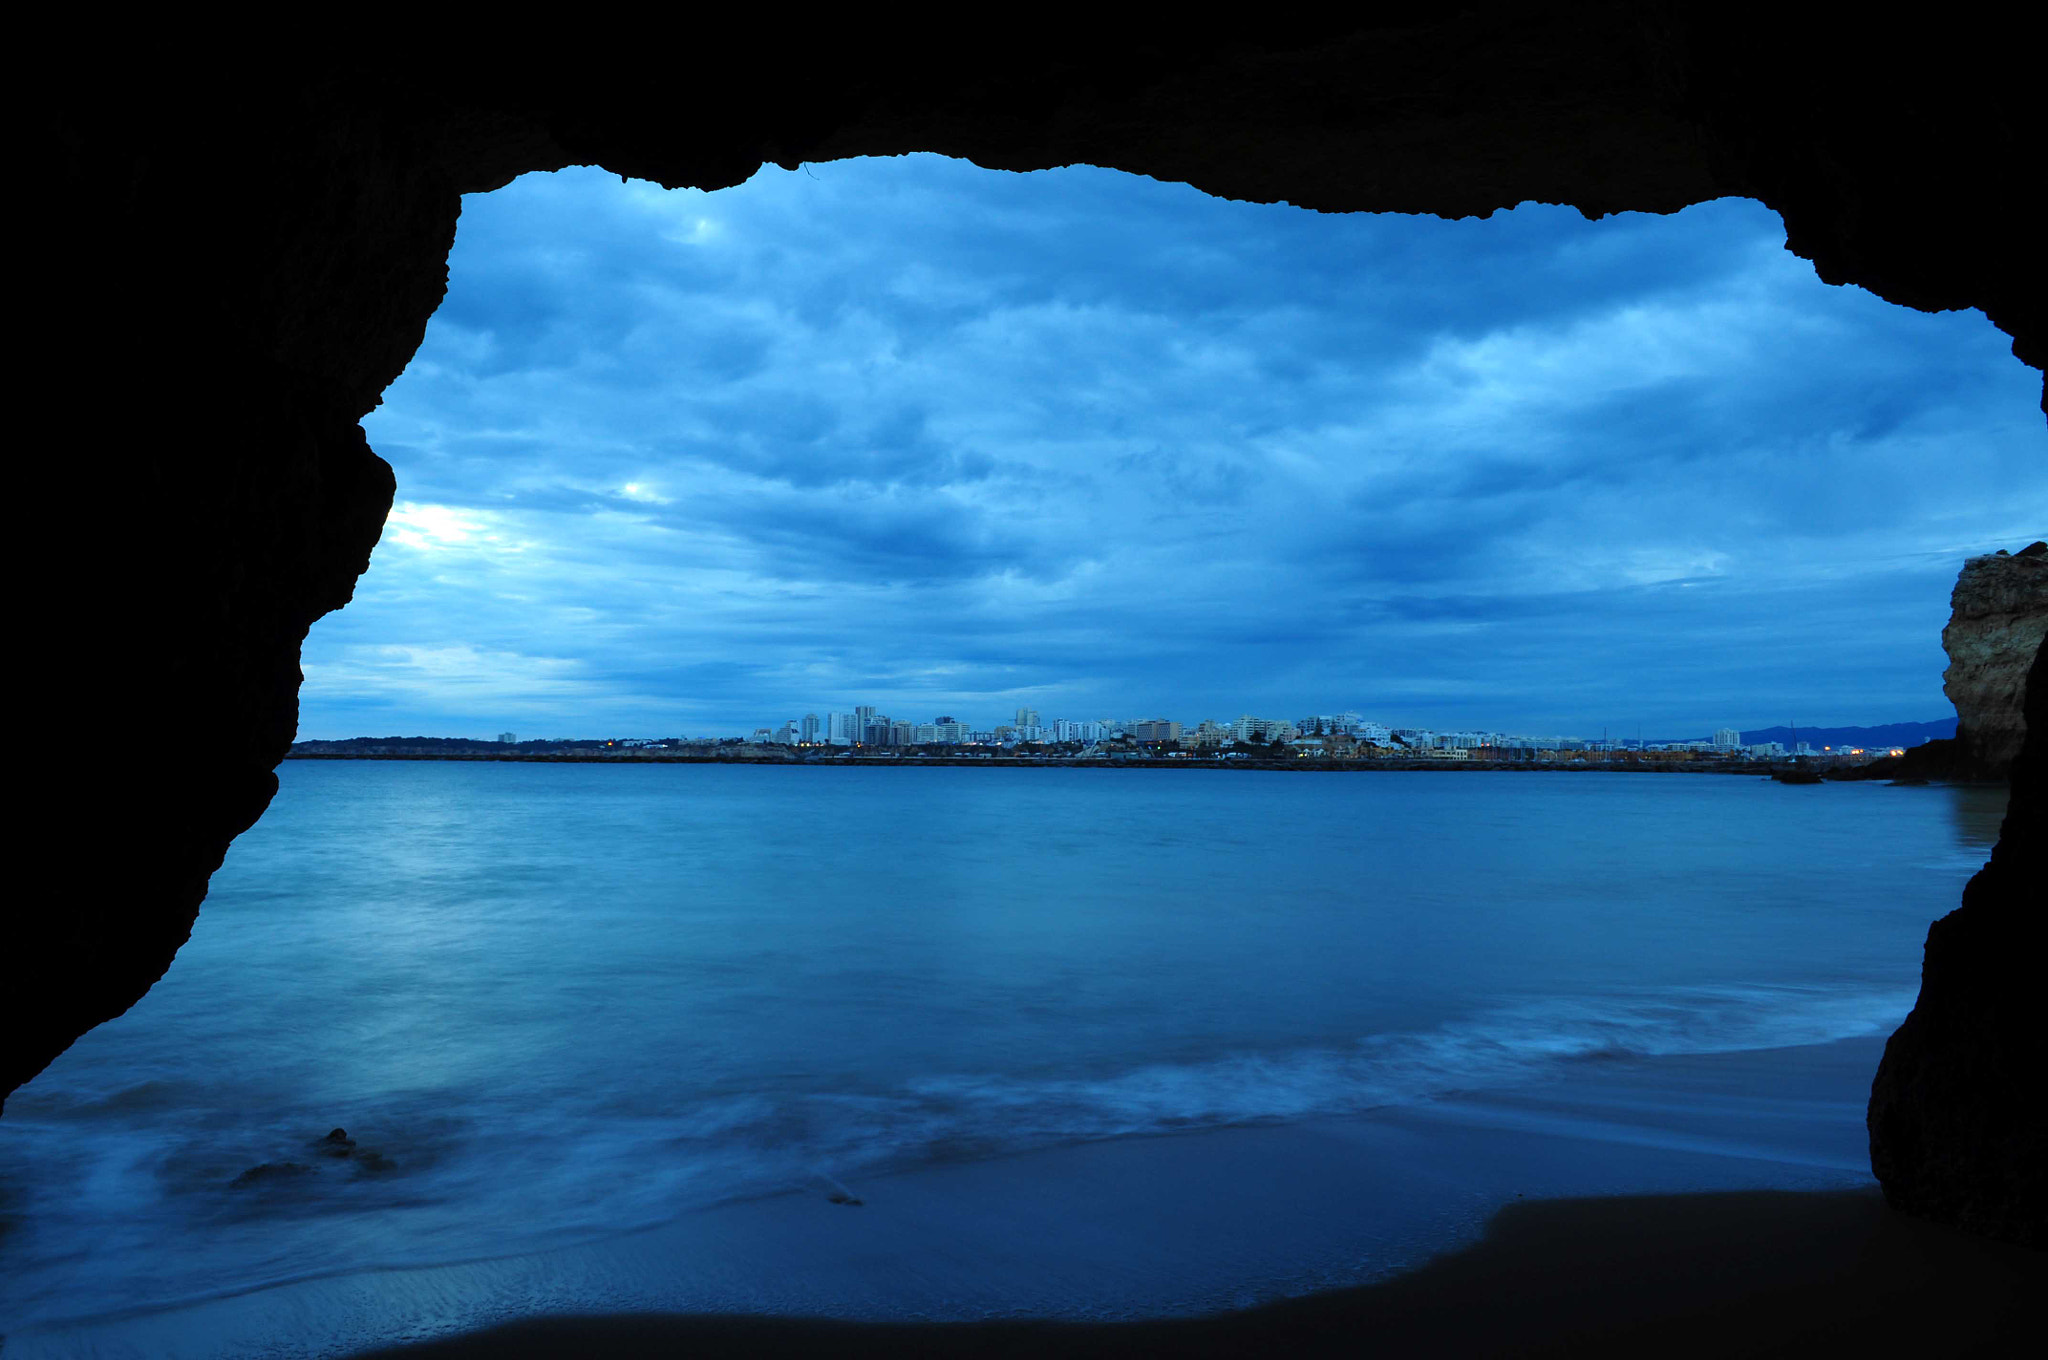 Photograph View from a sea cave by José Eusébio on 500px